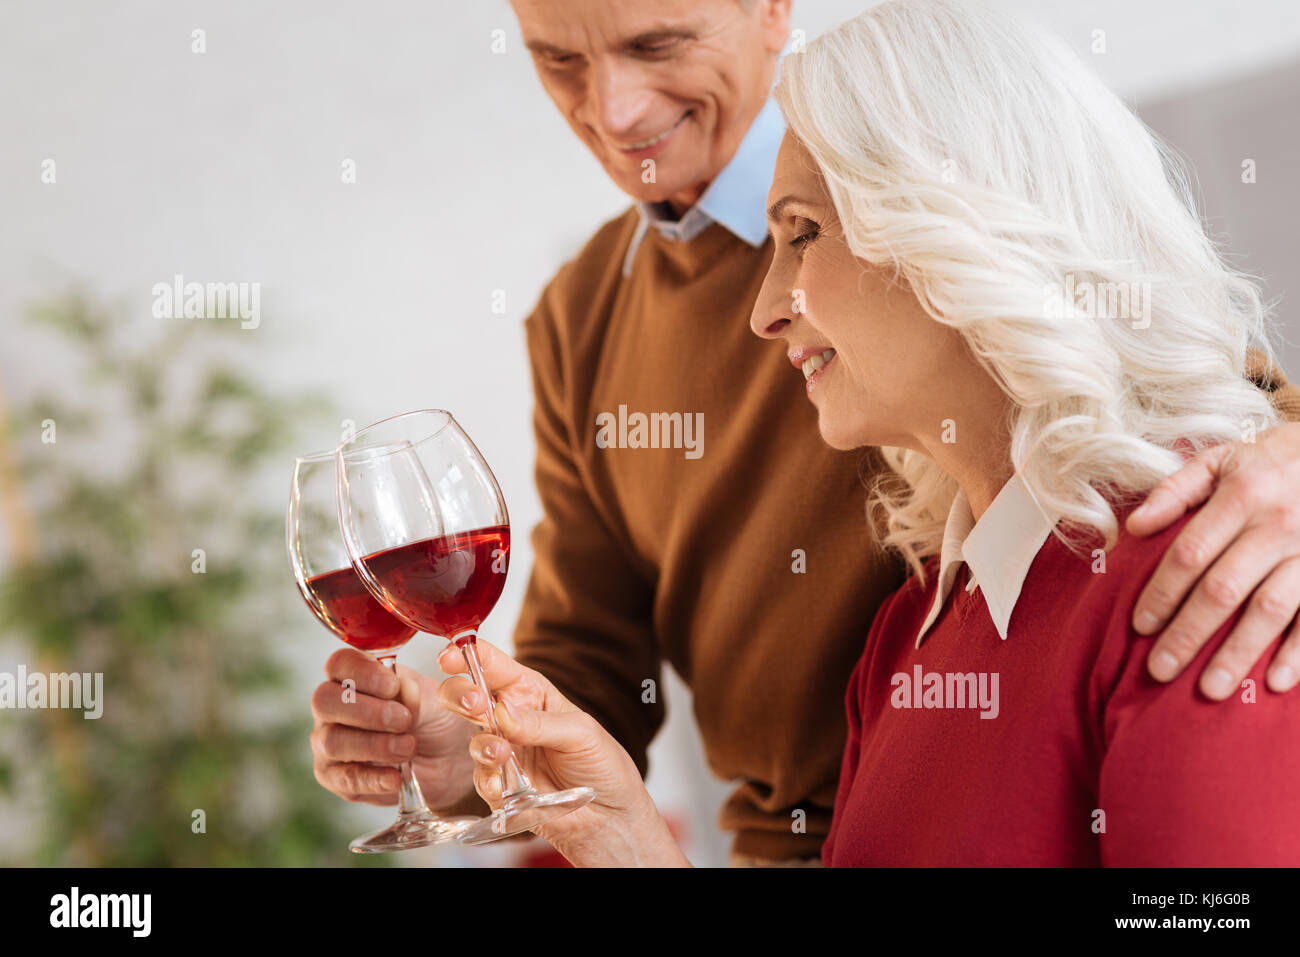 Cheerful couple drinking red wine Photo Stock